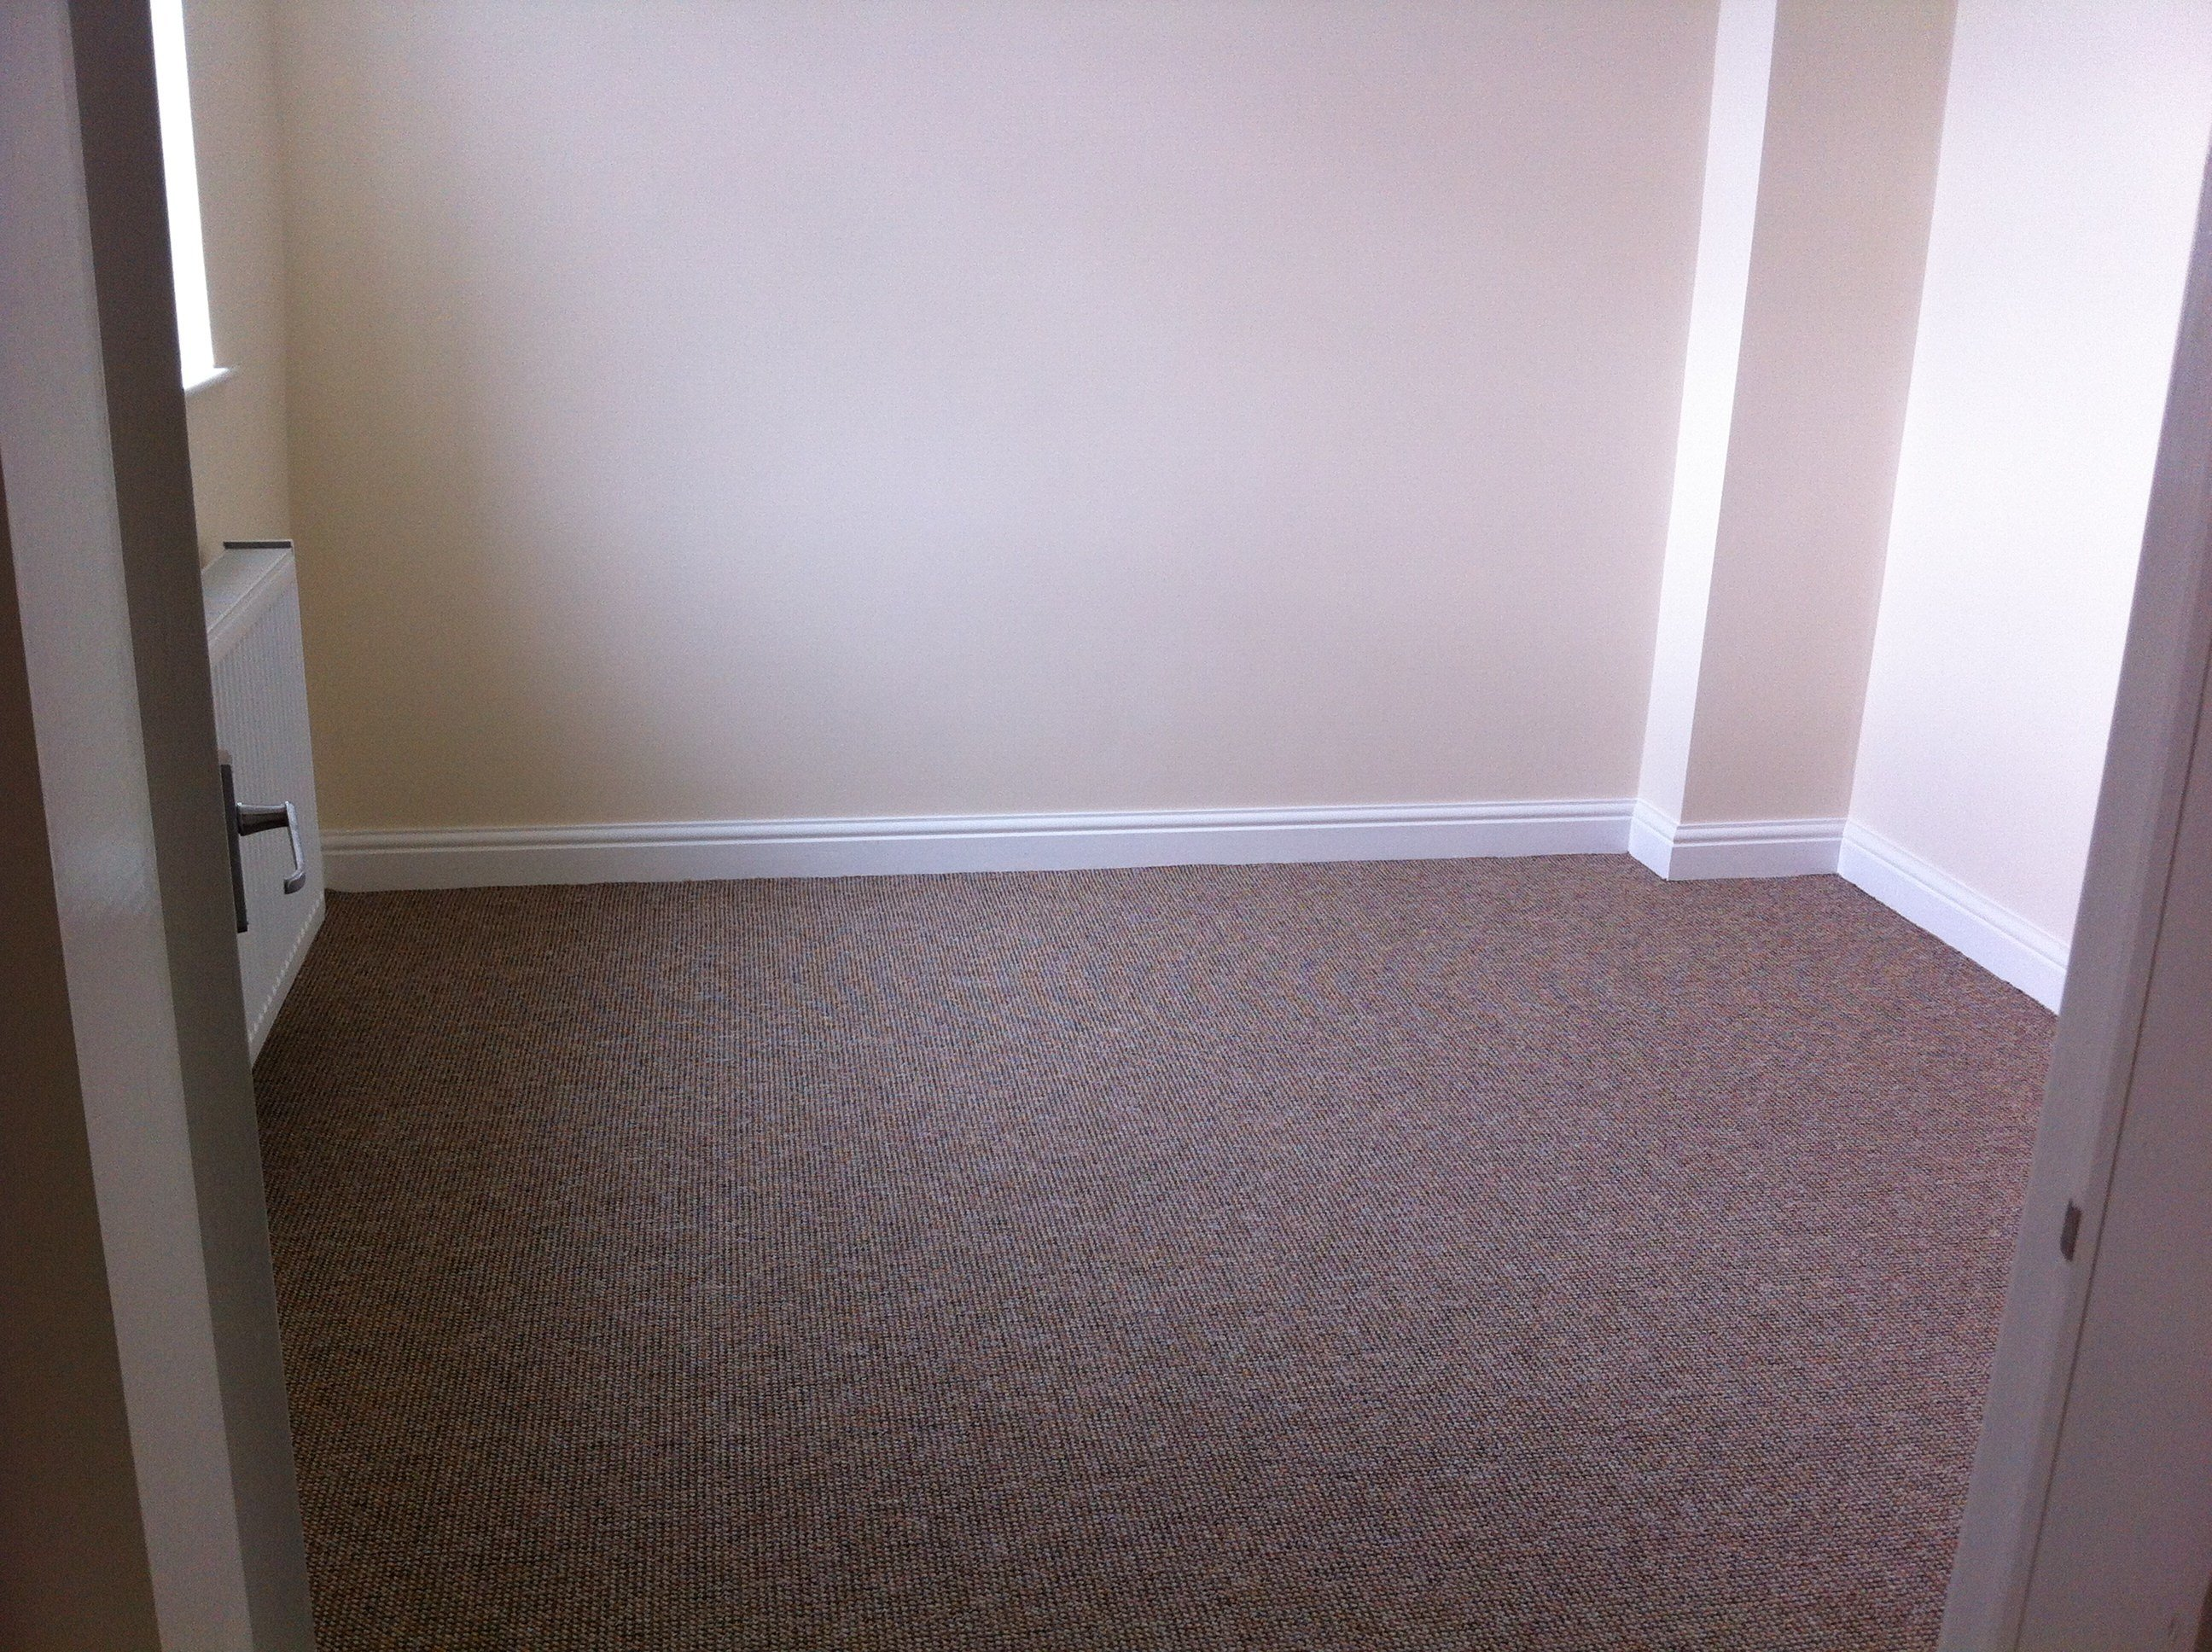 Best 2 Bed Flat To Rent Foljambe Road 4B Chesterfield S40 1Nw With Pictures Original 1024 x 768